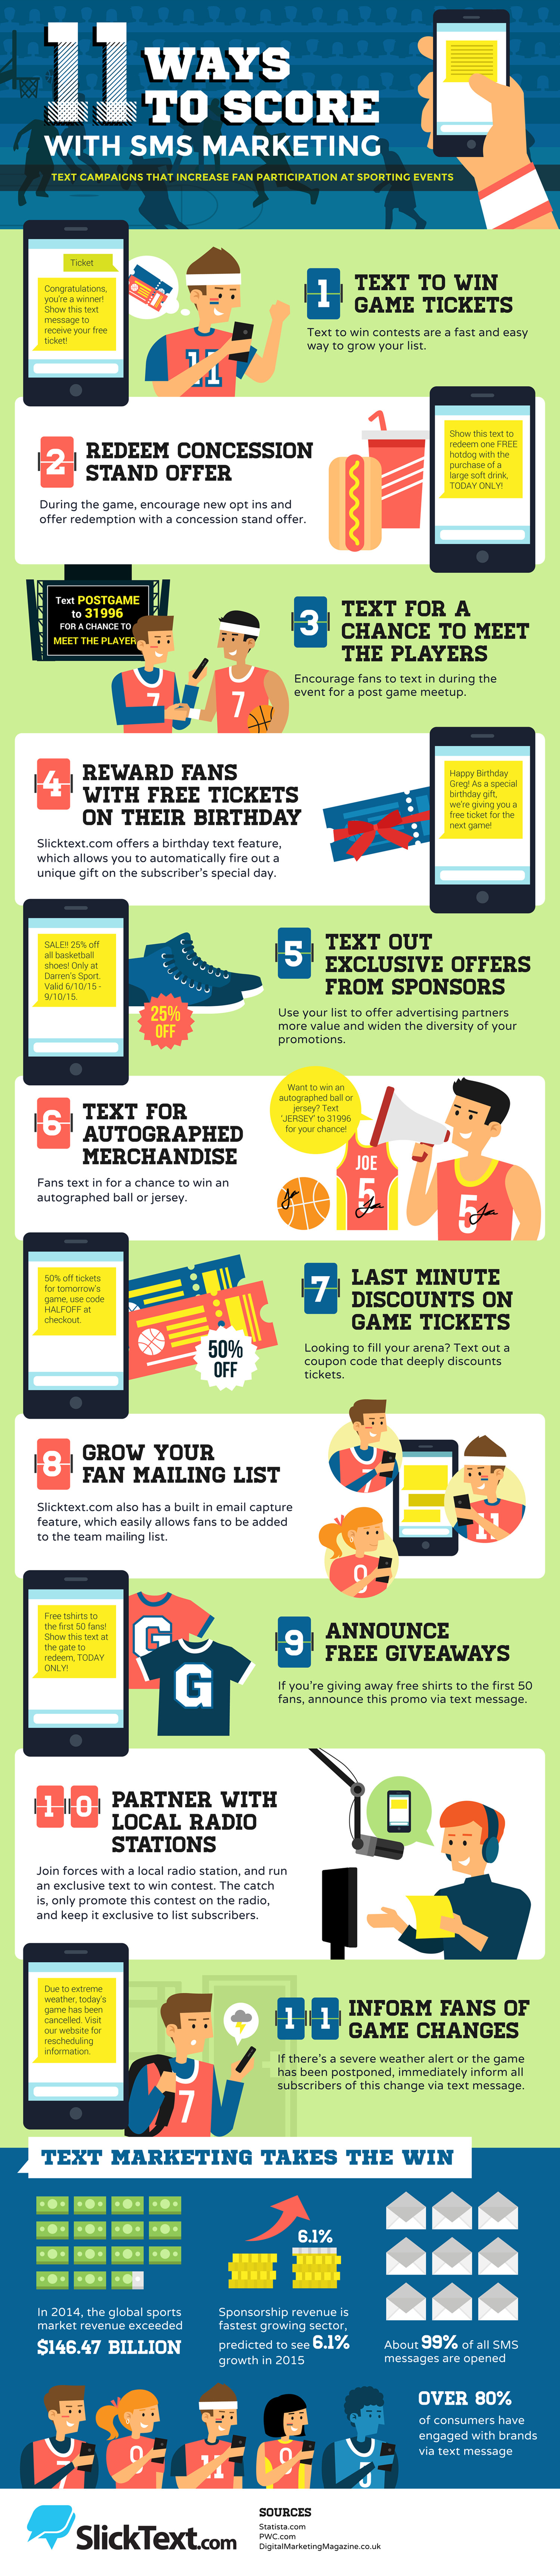 11 Ways to Score with SMS Marketing Infographic